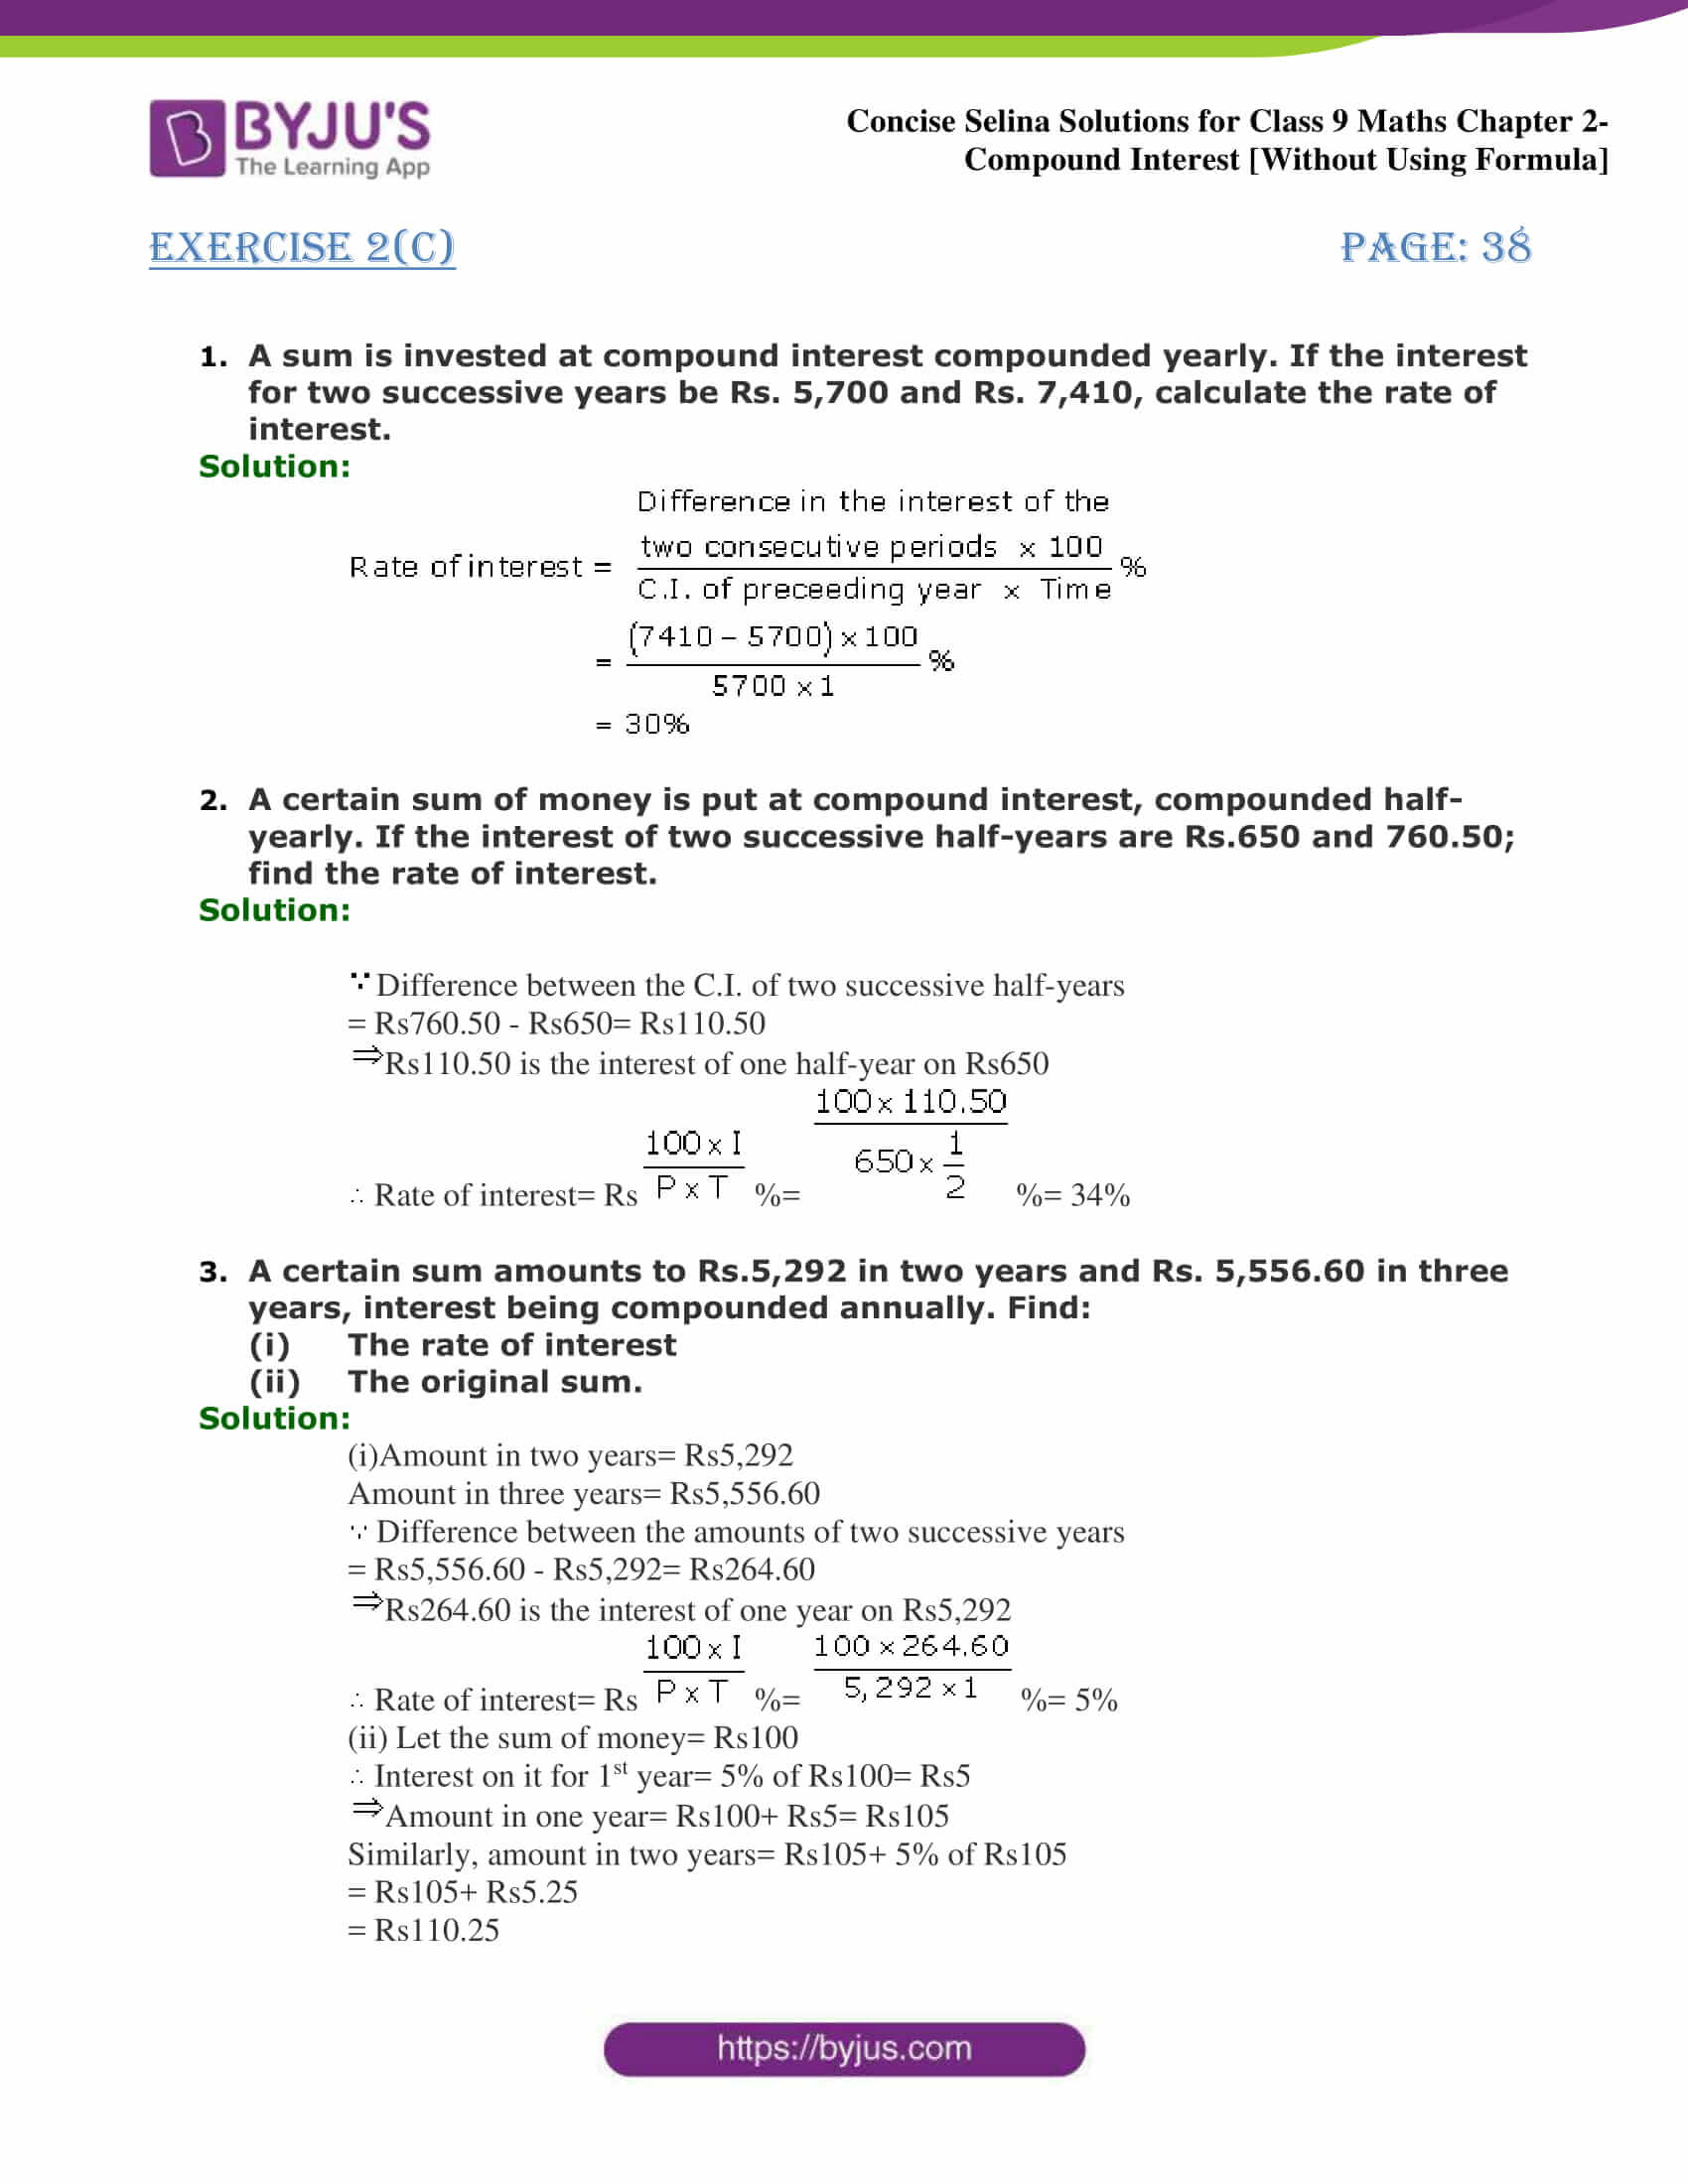 Selina Solutions for Class 9 Maths Chapter 2 Compound Interest part 15